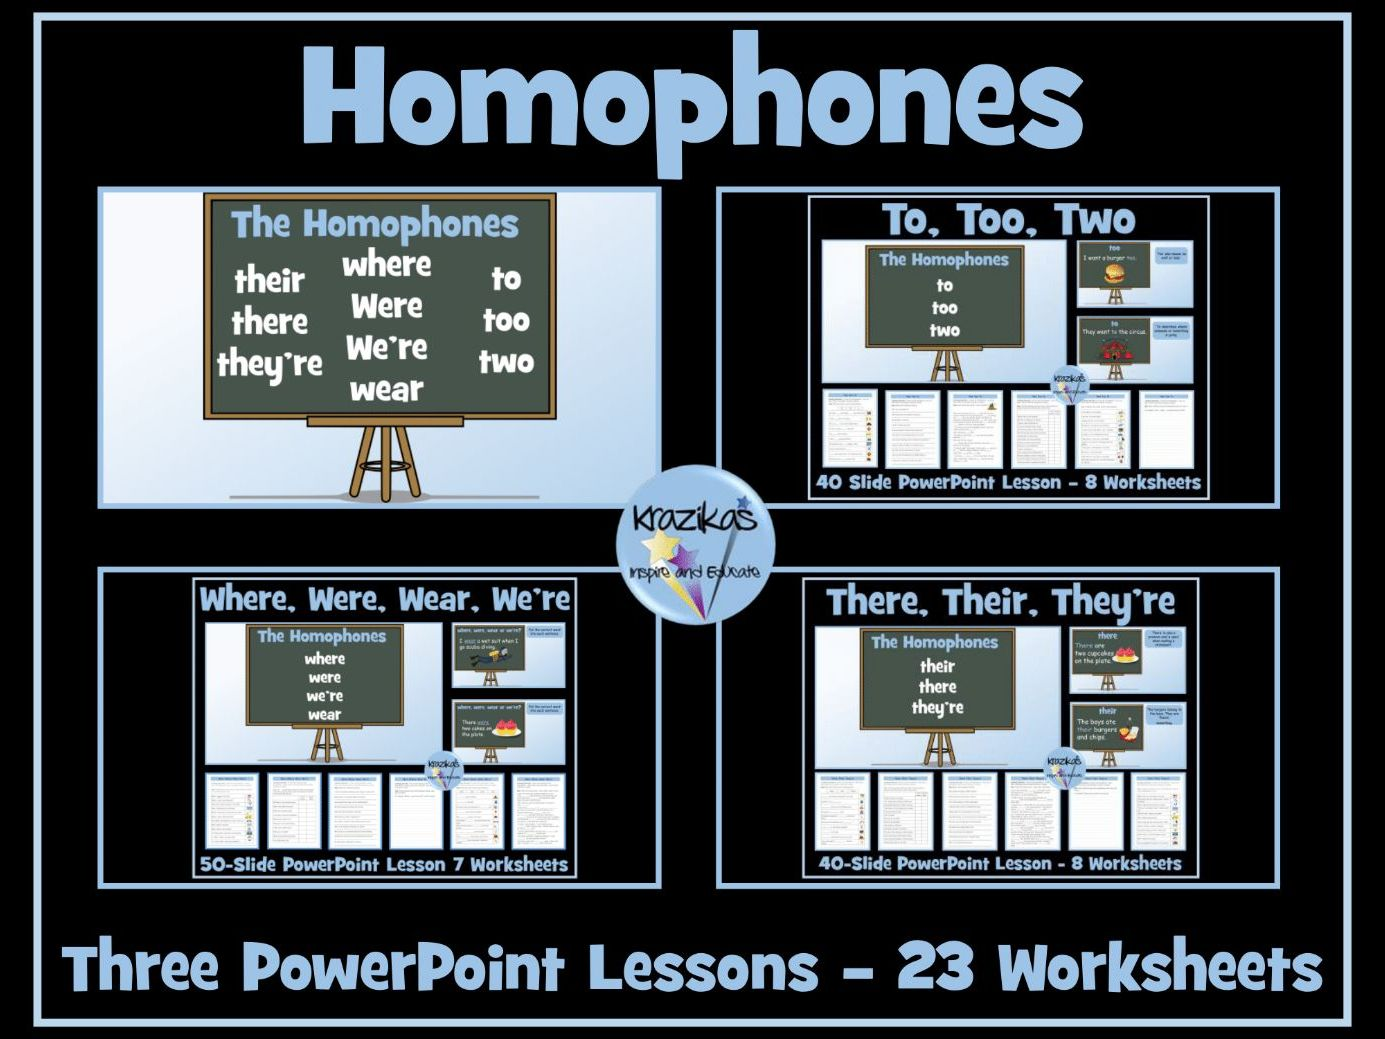 Homophones Where Were Wear There They Re Their Too